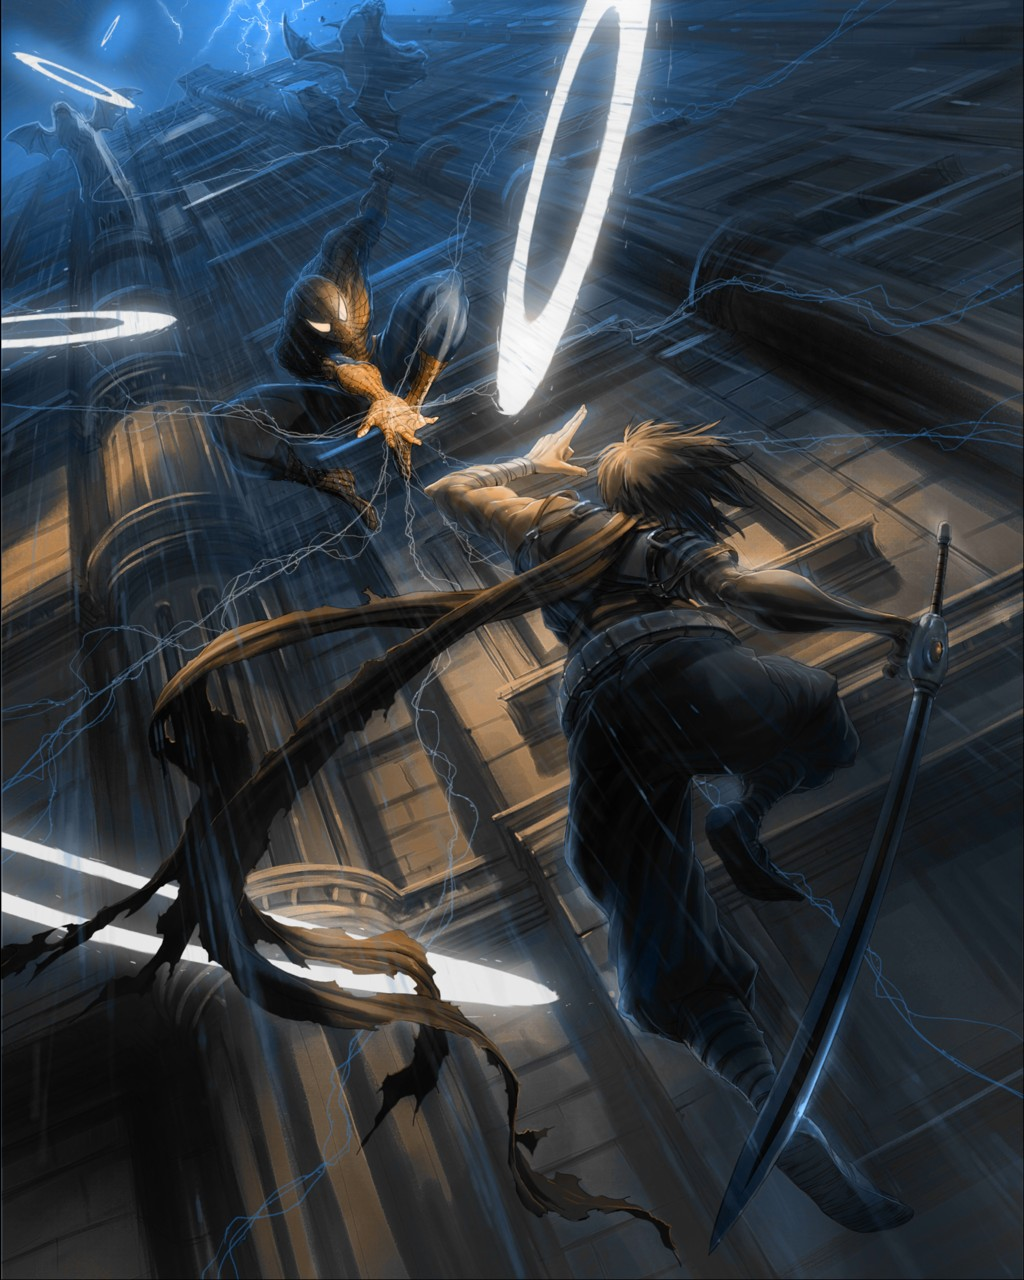 Strider Spider Images - Reverse Search